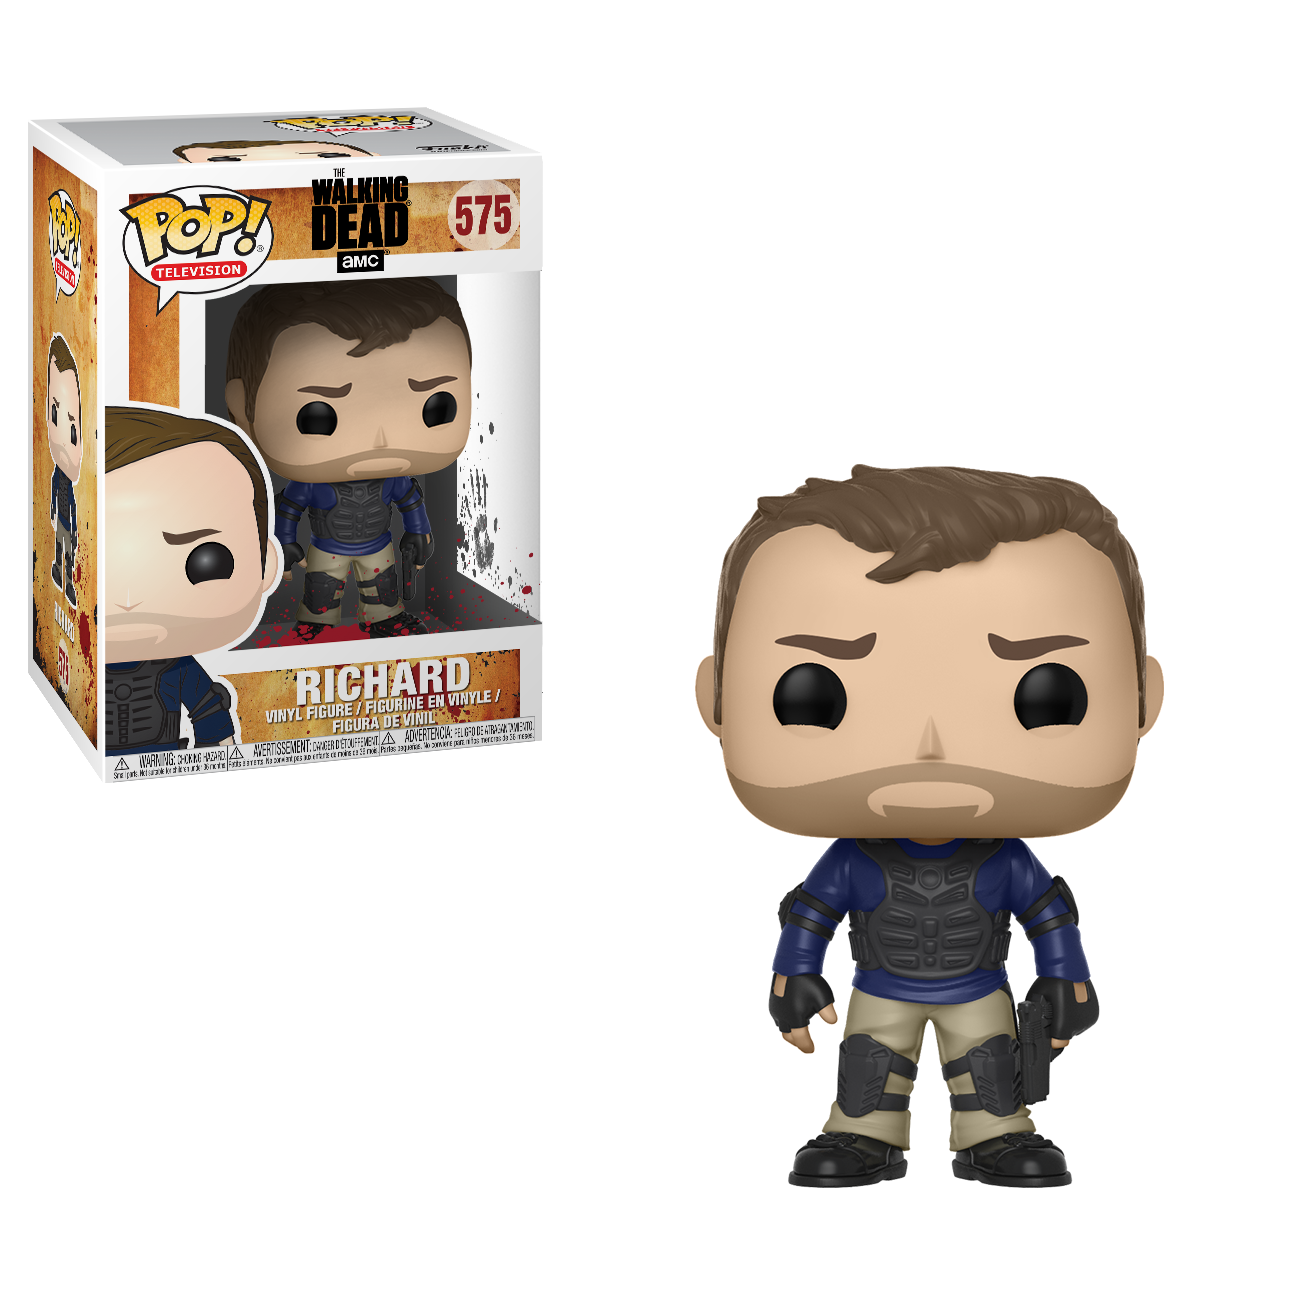 AMC's The Walking Dead Funko Pop! - Richard